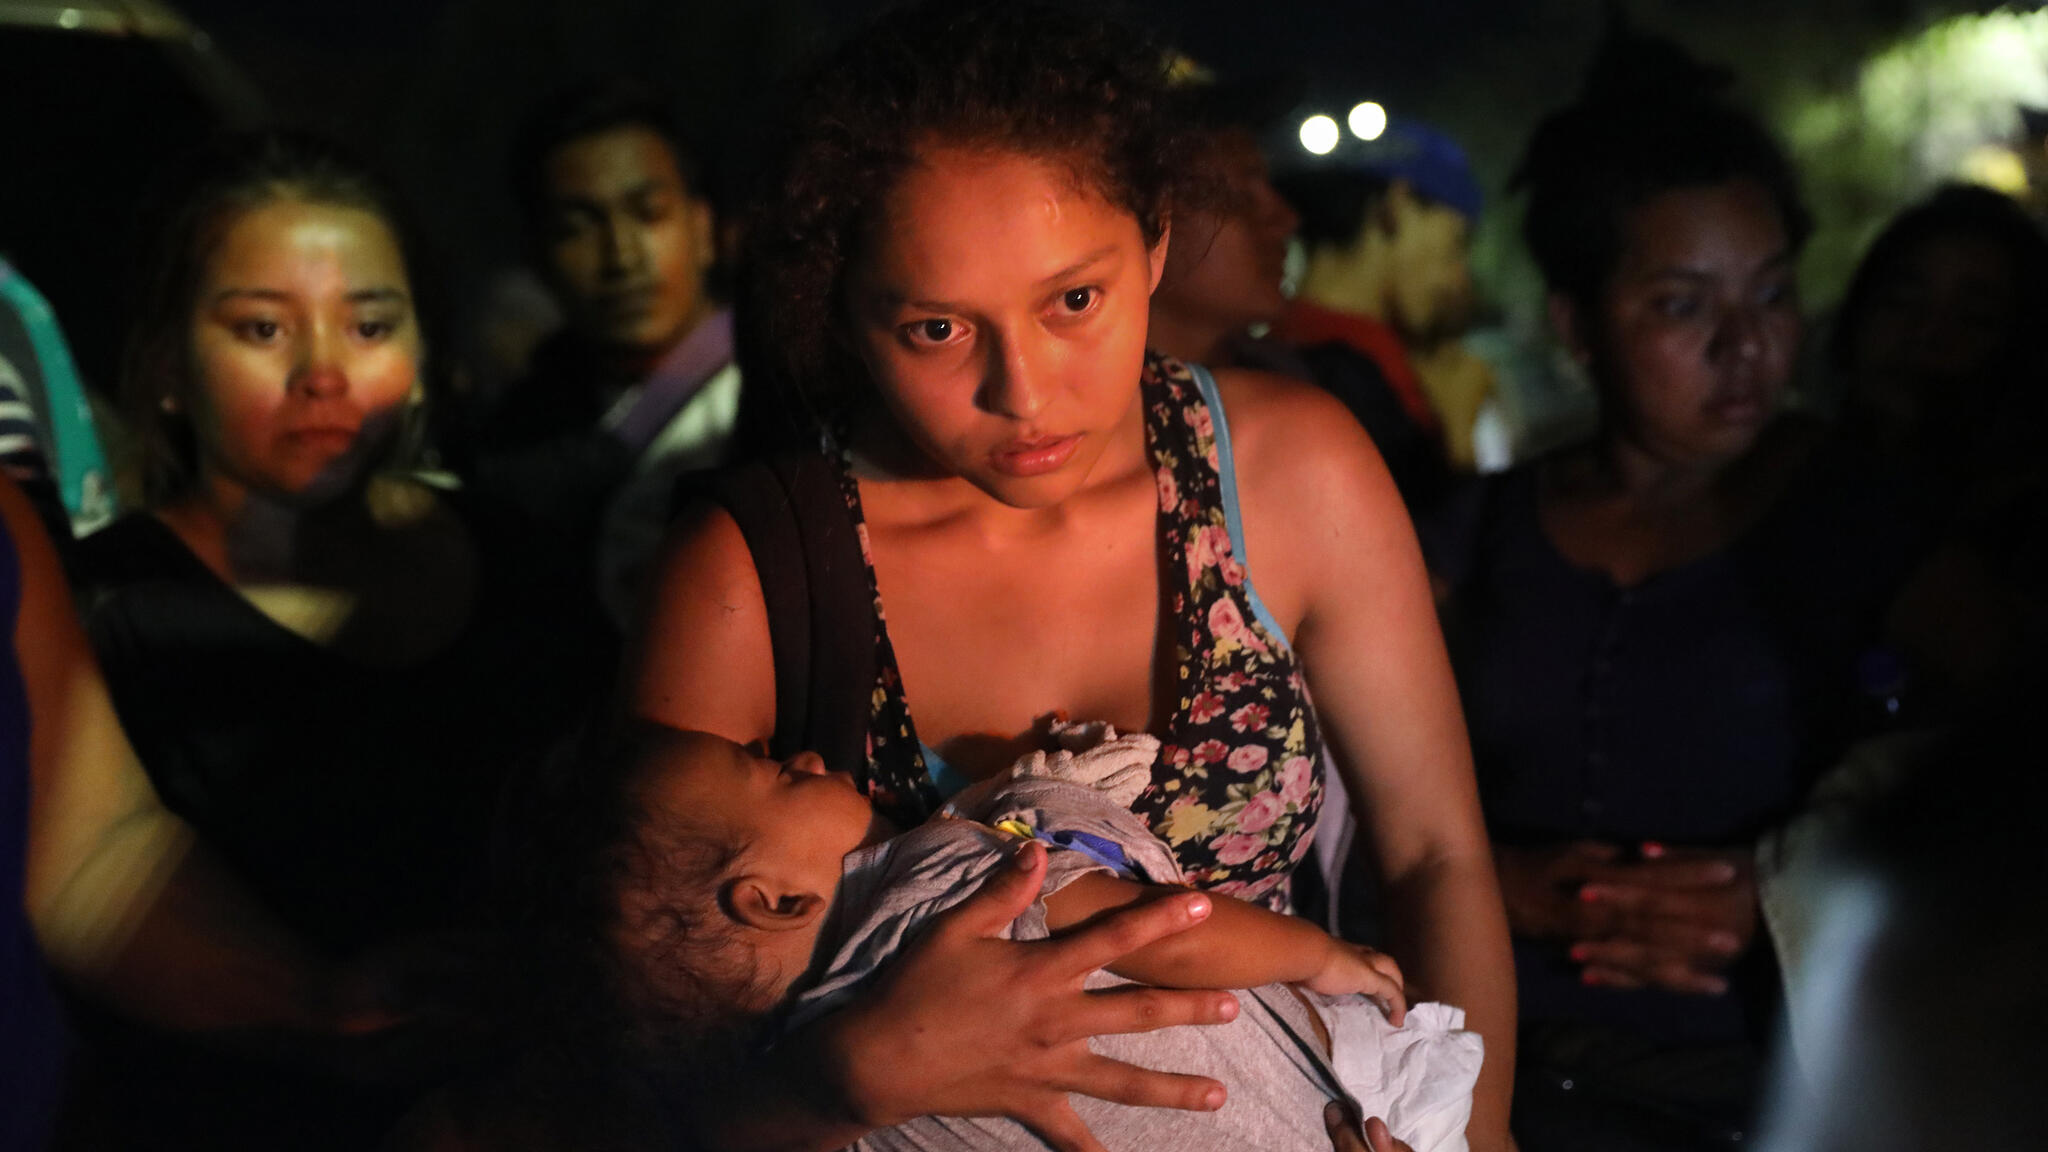 immigration agents take child from mom - HD2048×1152